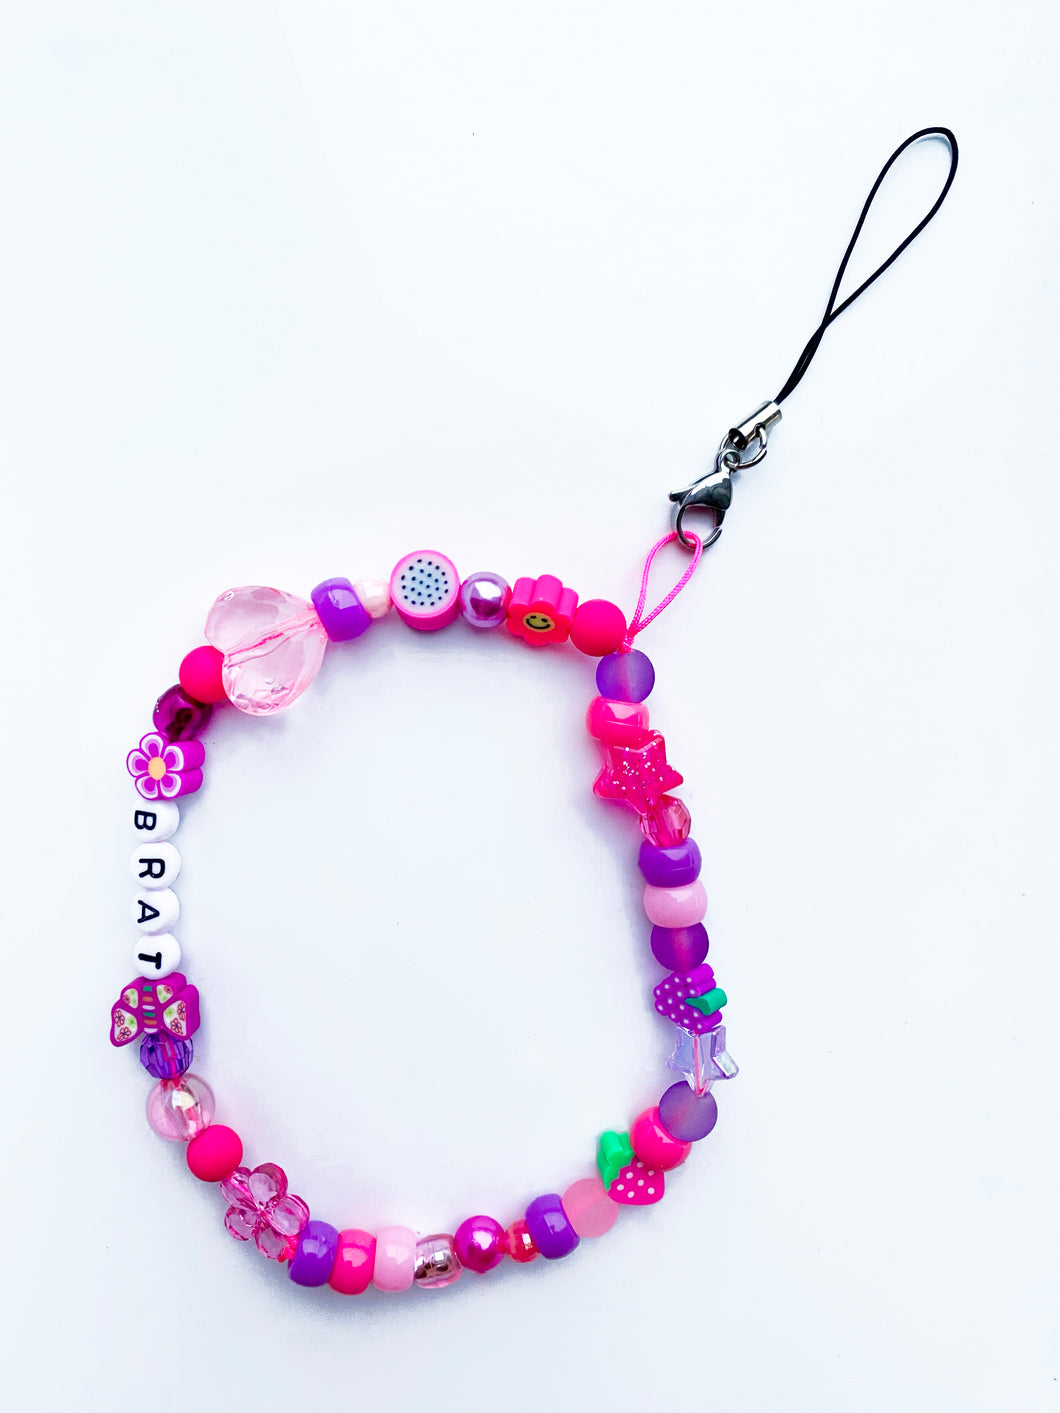 The JULIET Phone beads - Blackcurrant Pop